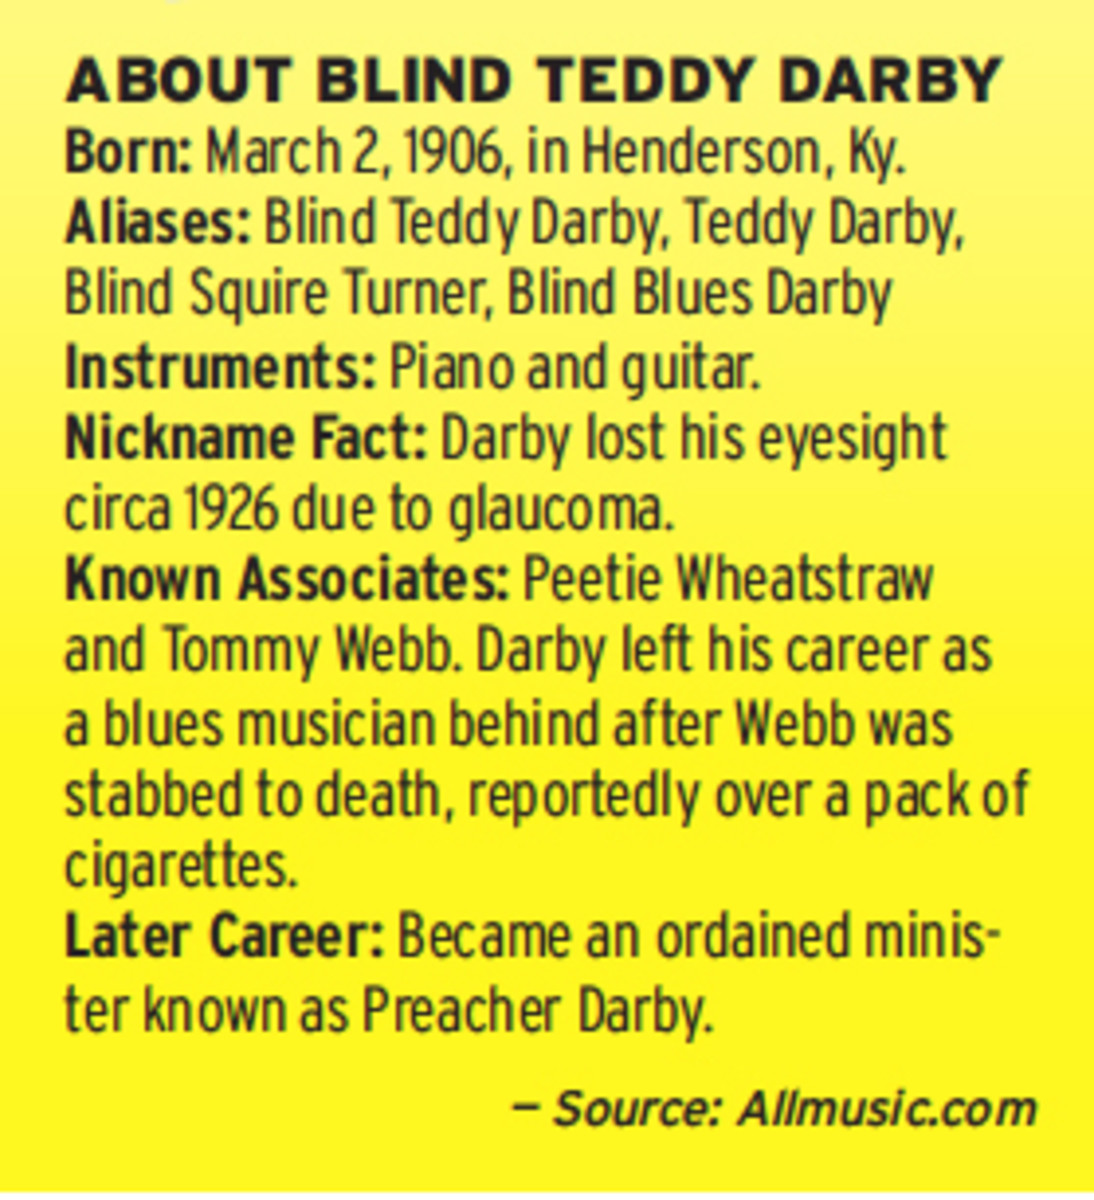 AboutBlindTeddyDarby